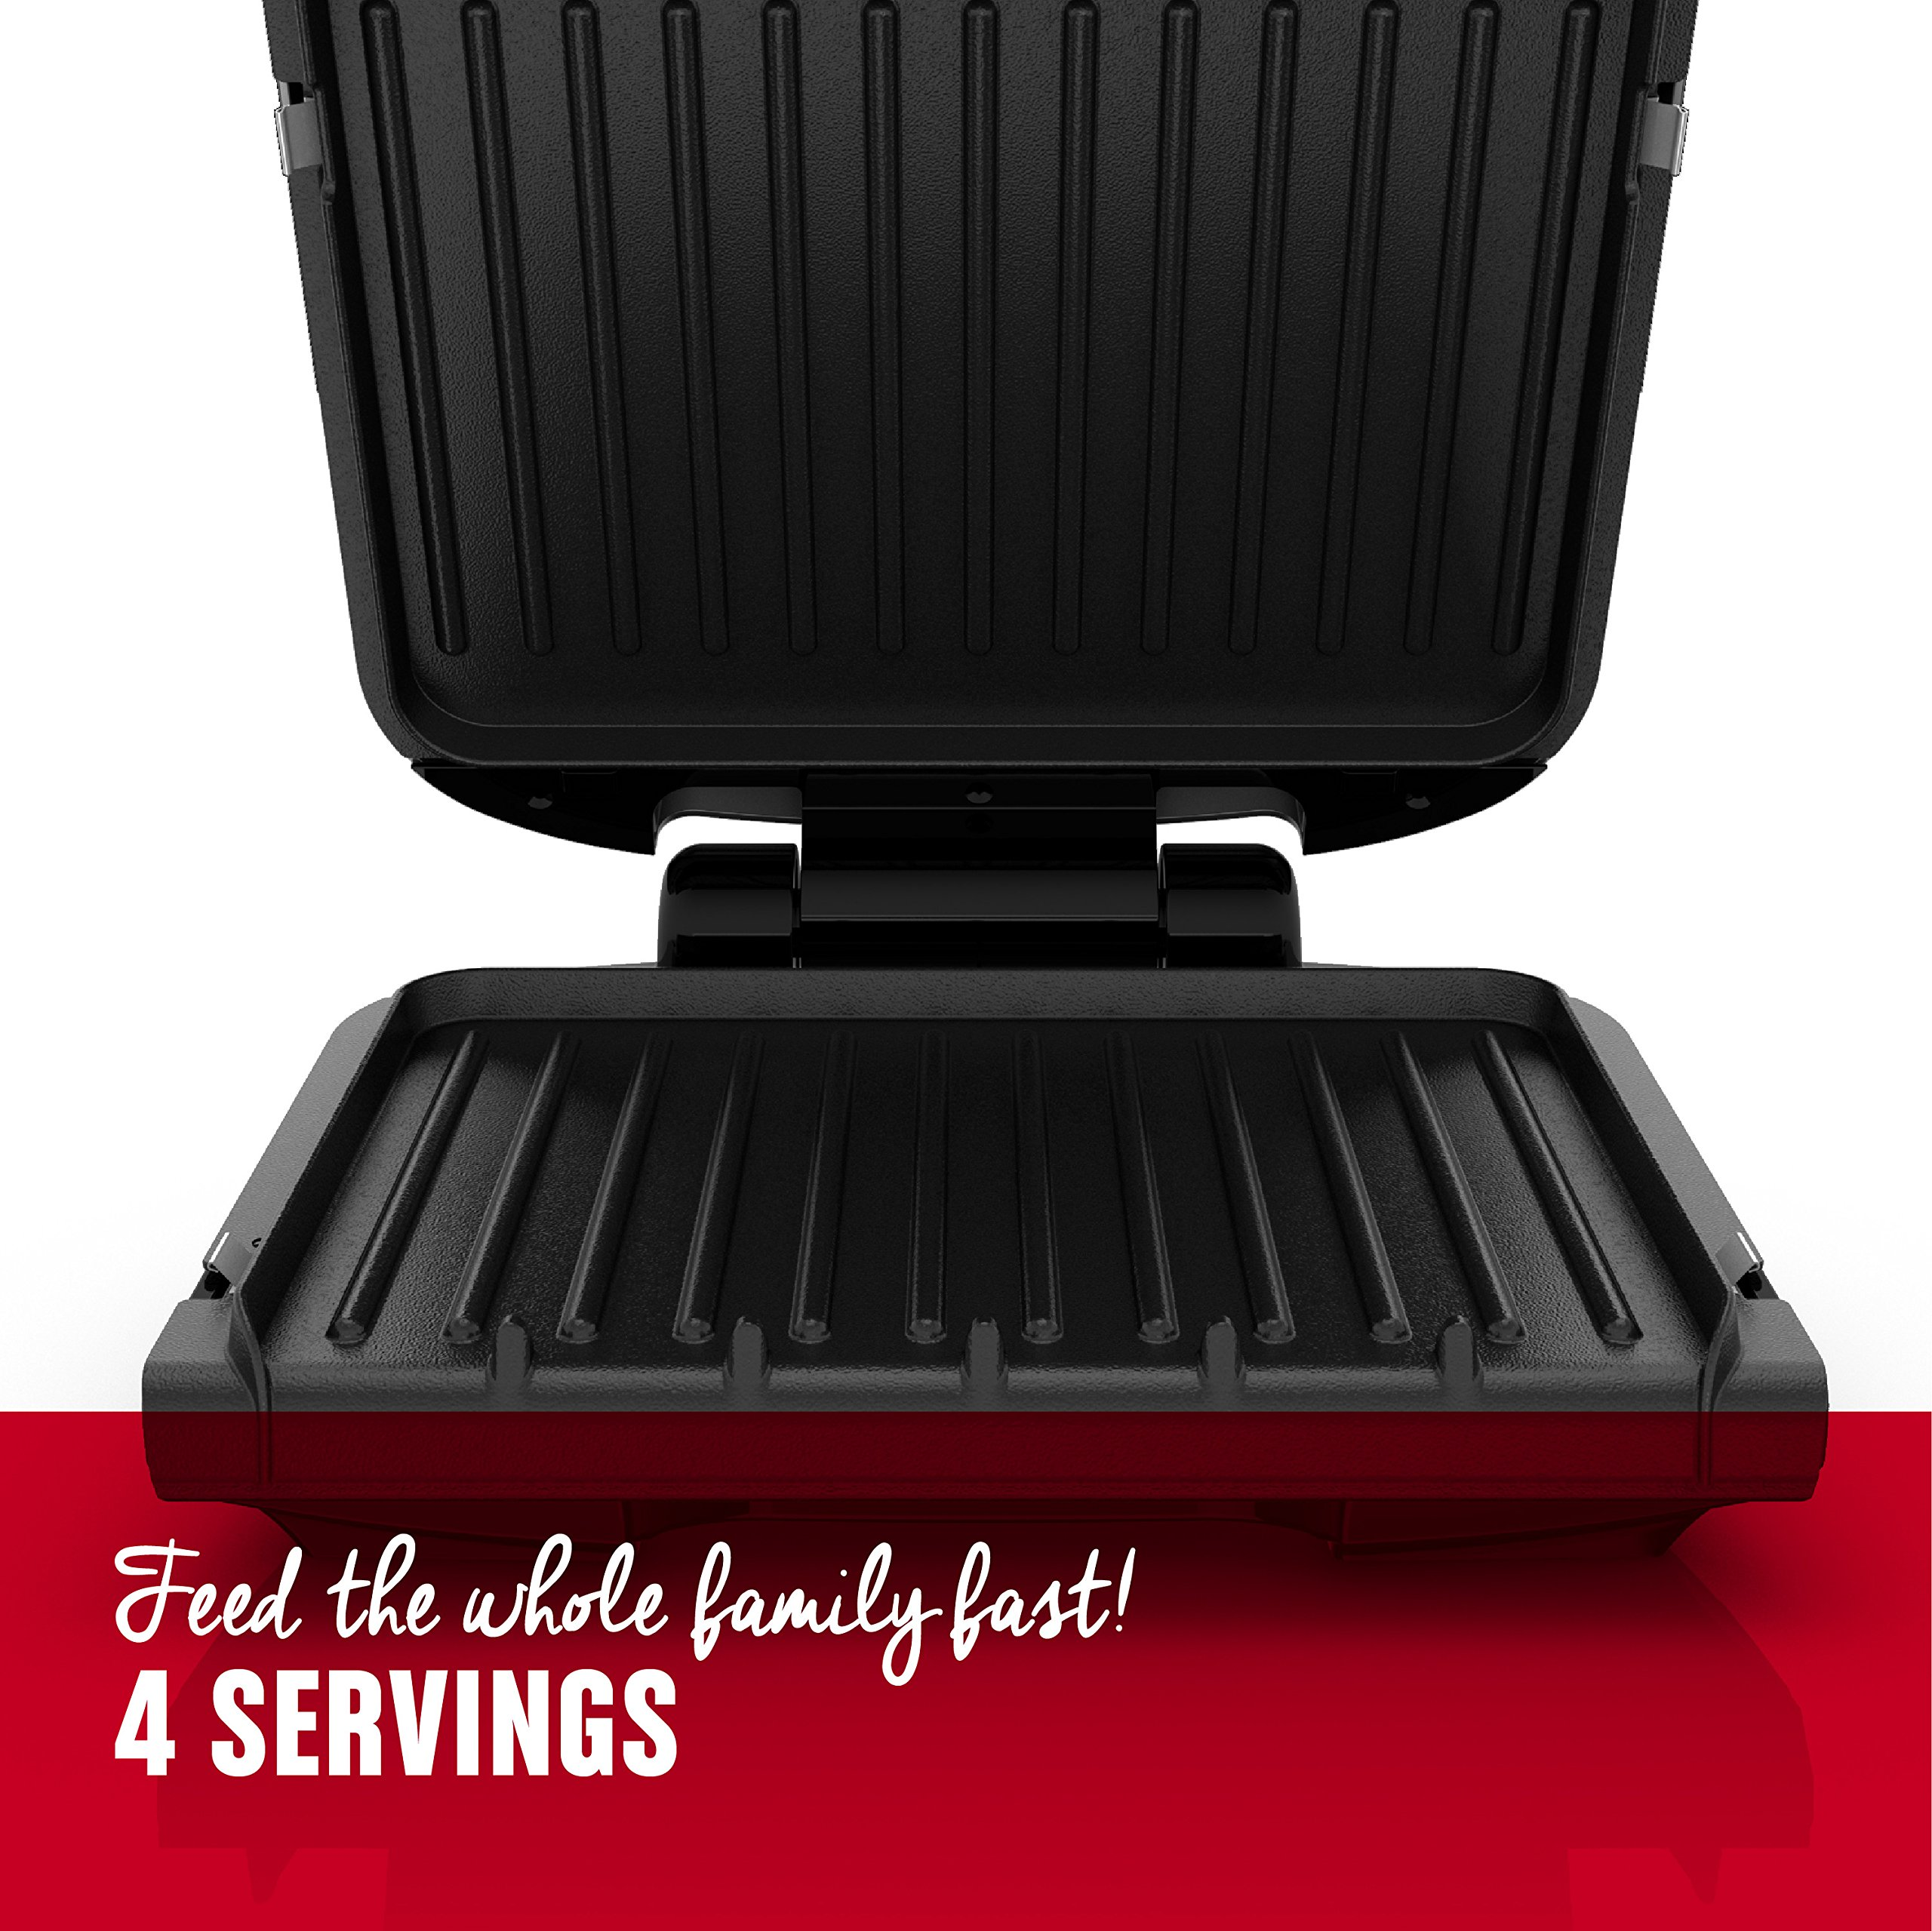 George Foreman 4-Serving Removable Plate Grill and Panini Press, Black, GRP1060B by George Foreman (Image #2)